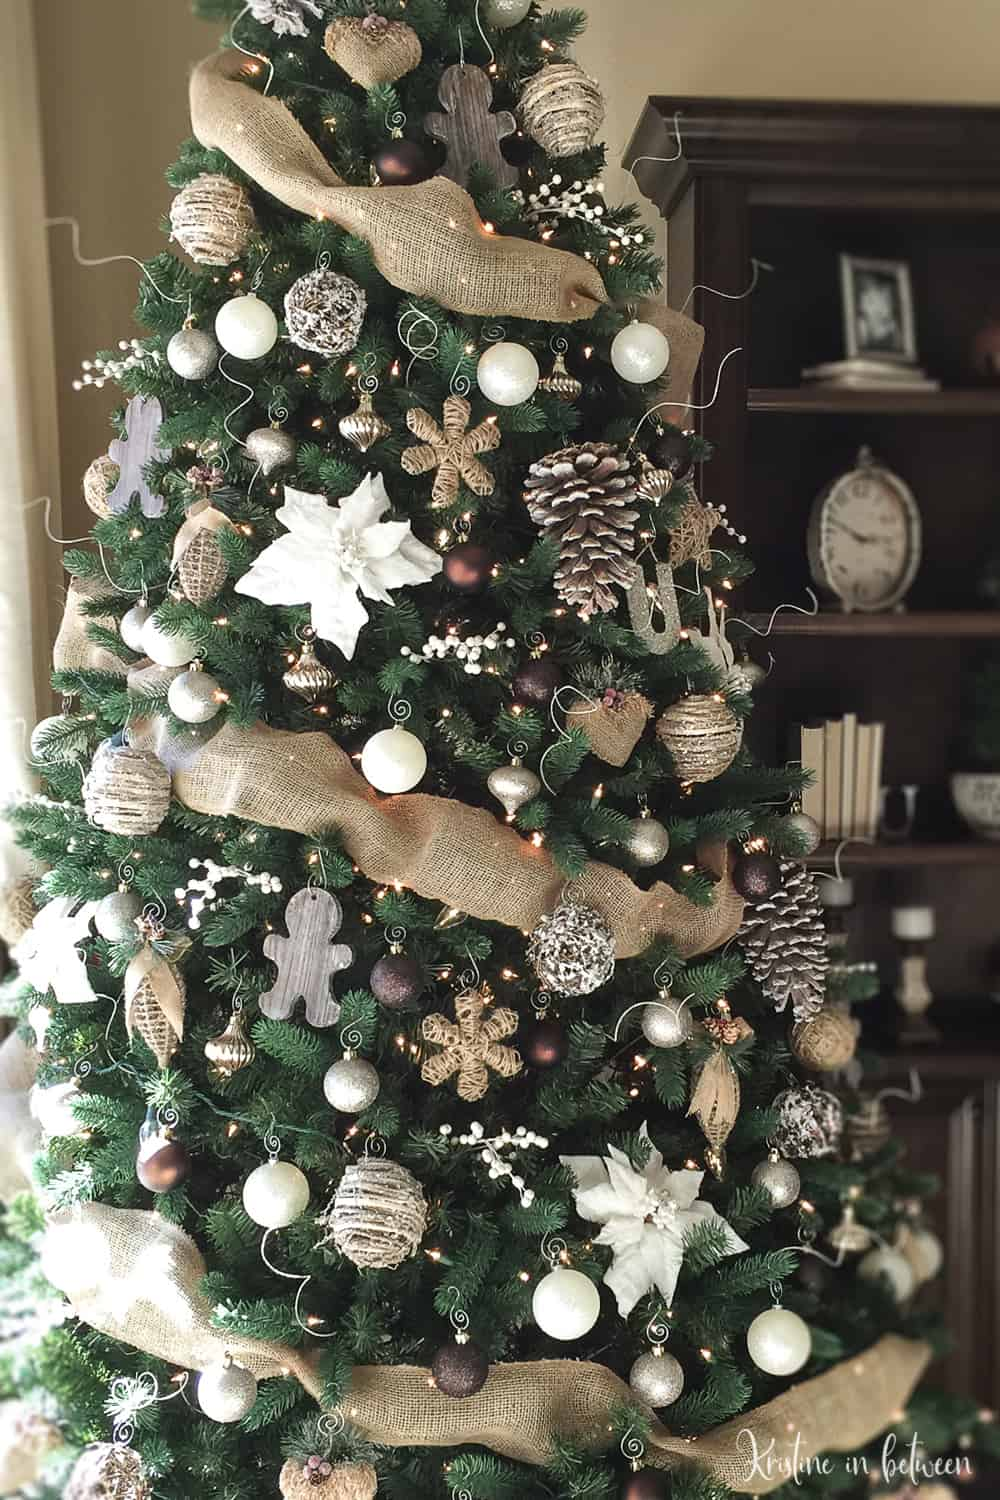 Add farmhouse charm with this DIY galvanized bucket to hold your Christmas tree.